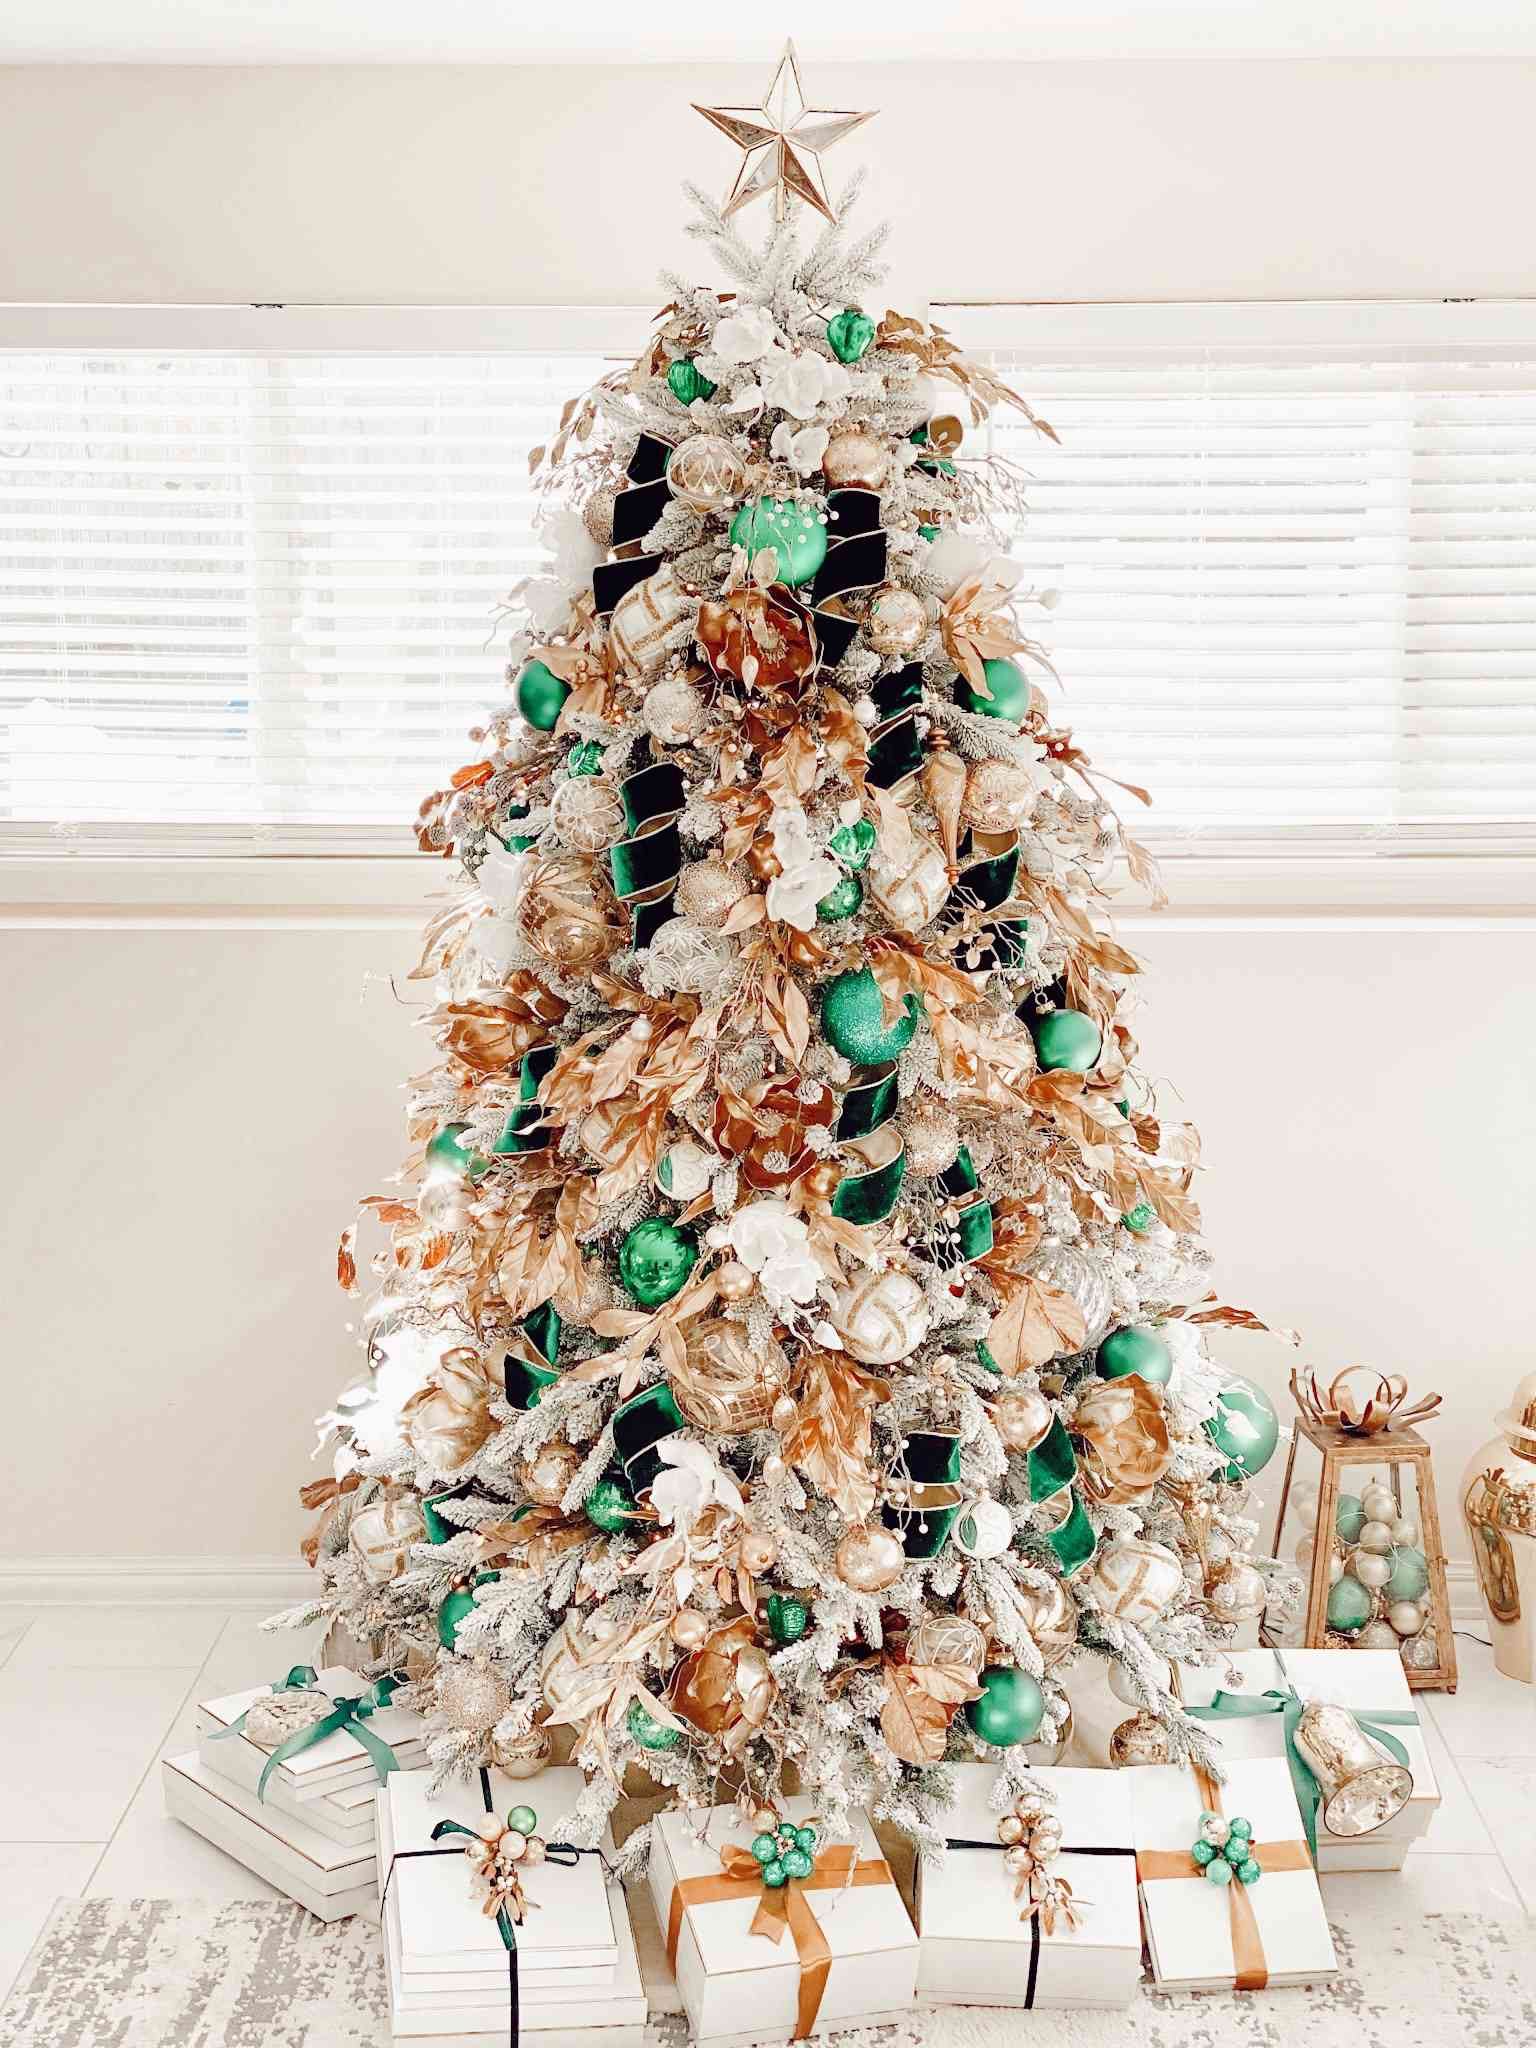 Maricela Caballero's white Christmas tree with emerald green and gold ornaments